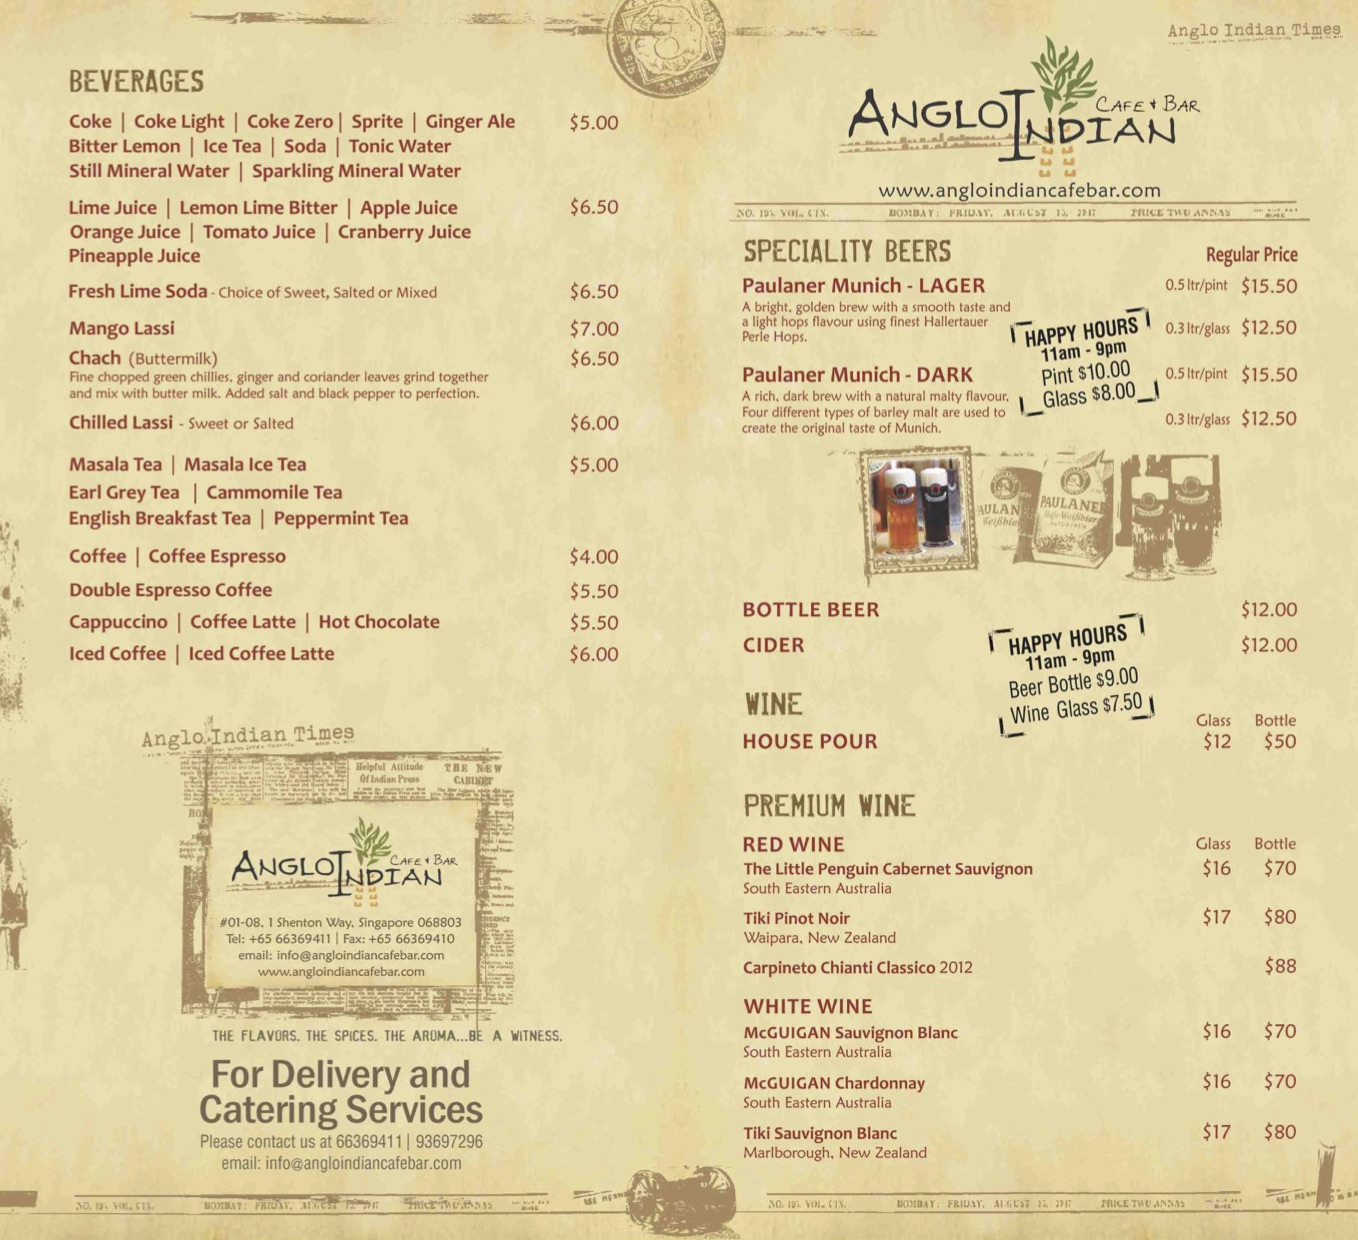 Angli Indian Cafe & Bar - Beverages Menu Pg1 - TREAT